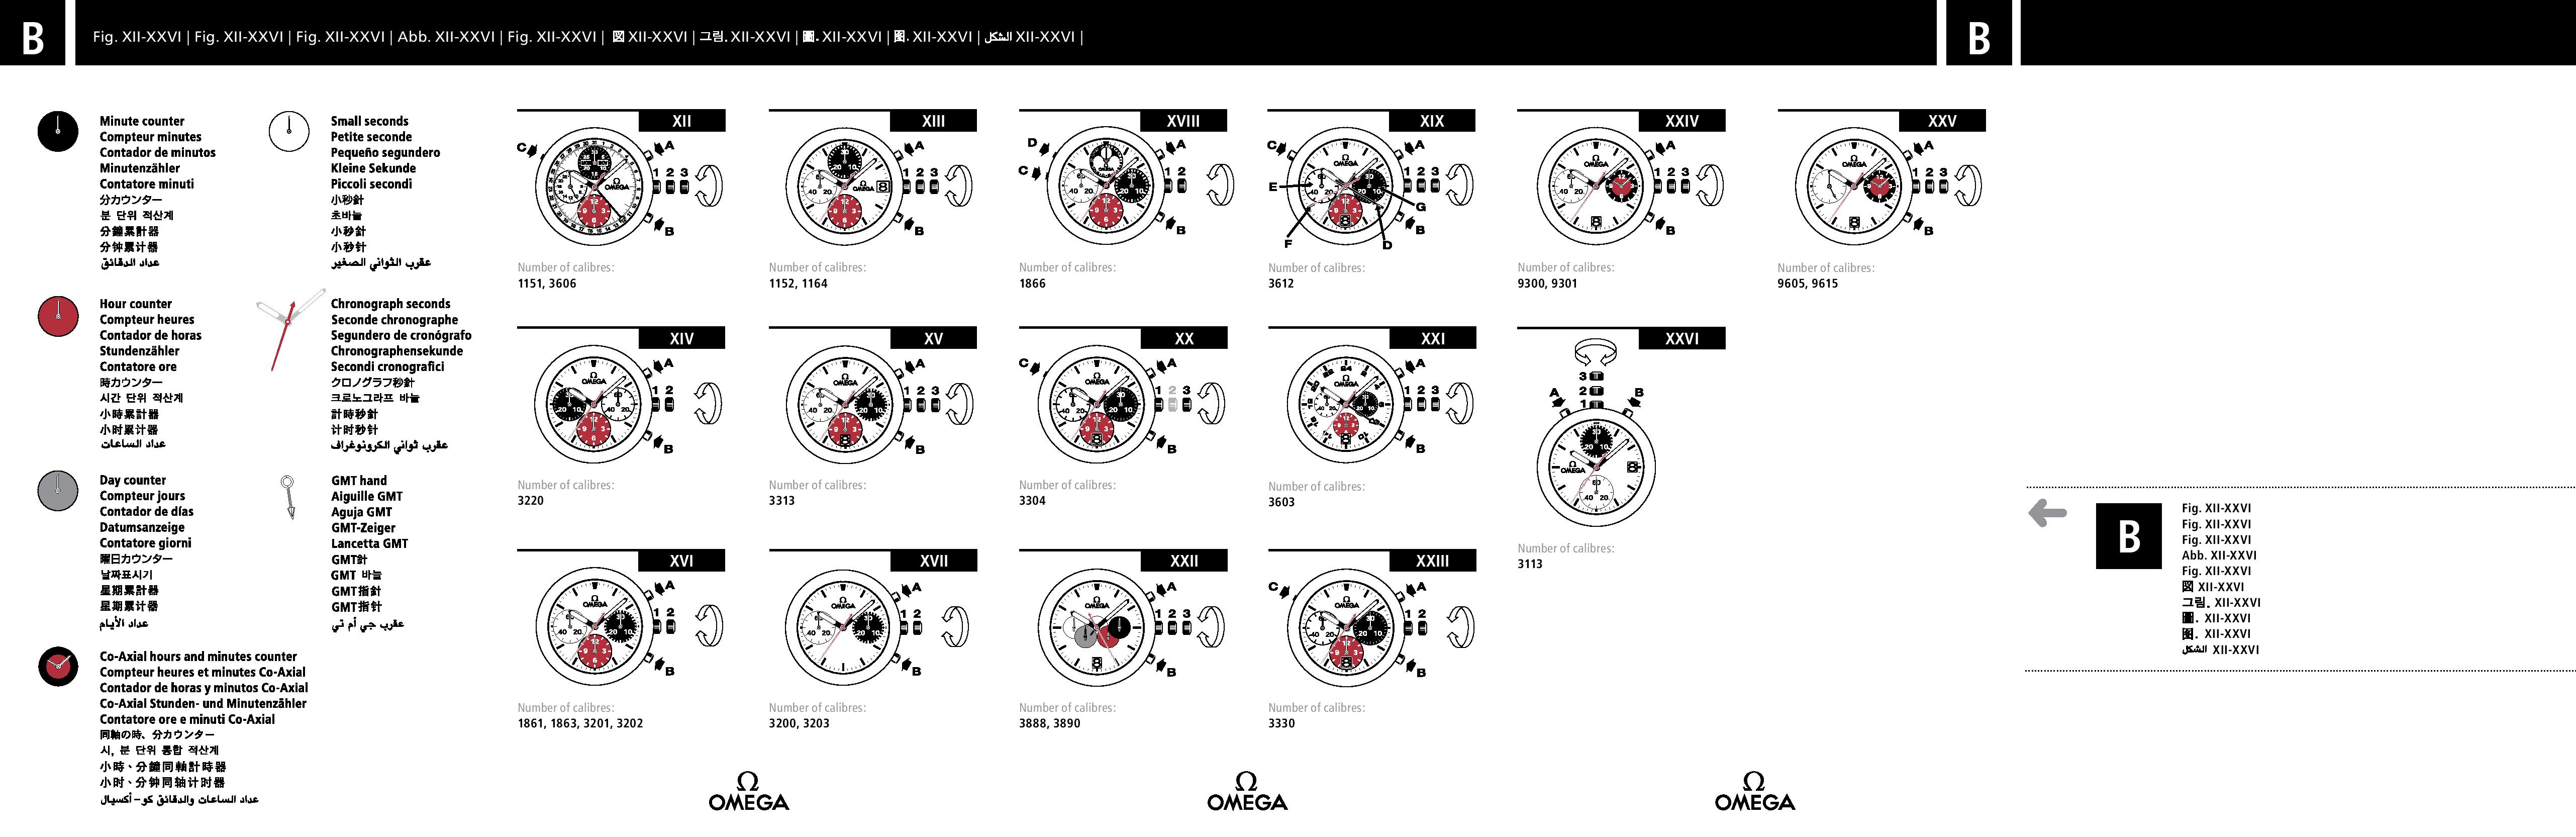 omega user manual speedywatches rh speedywatches com omega seamaster gmt instruction manual omega seamaster multifunction instruction manual